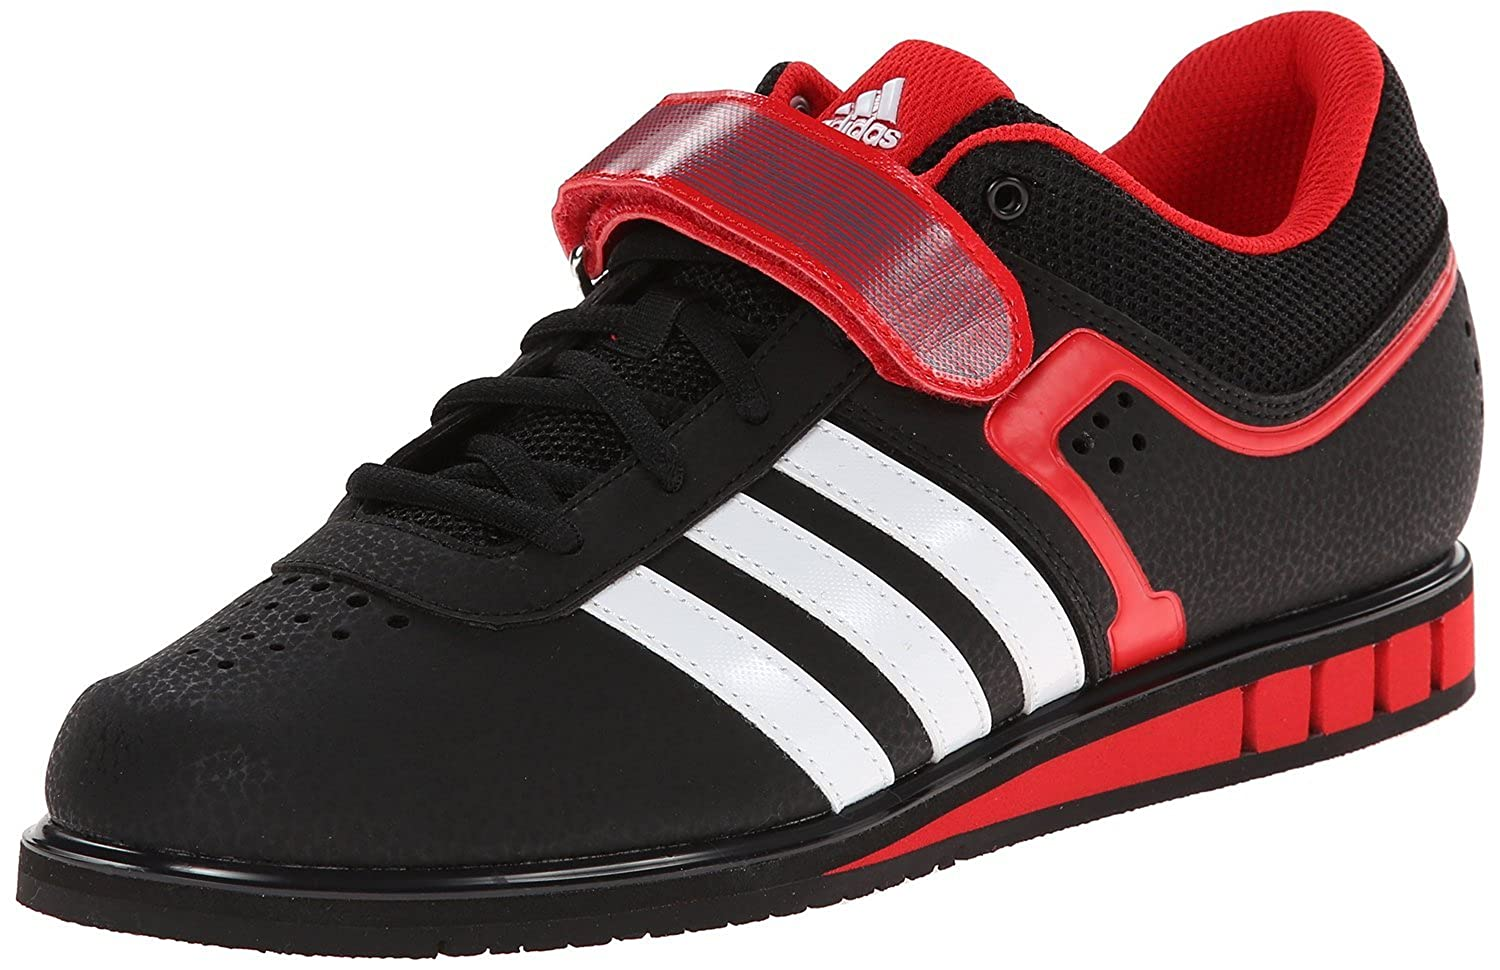 Adidas Powerlift 2.0 Weightlifting Chaussure AW15